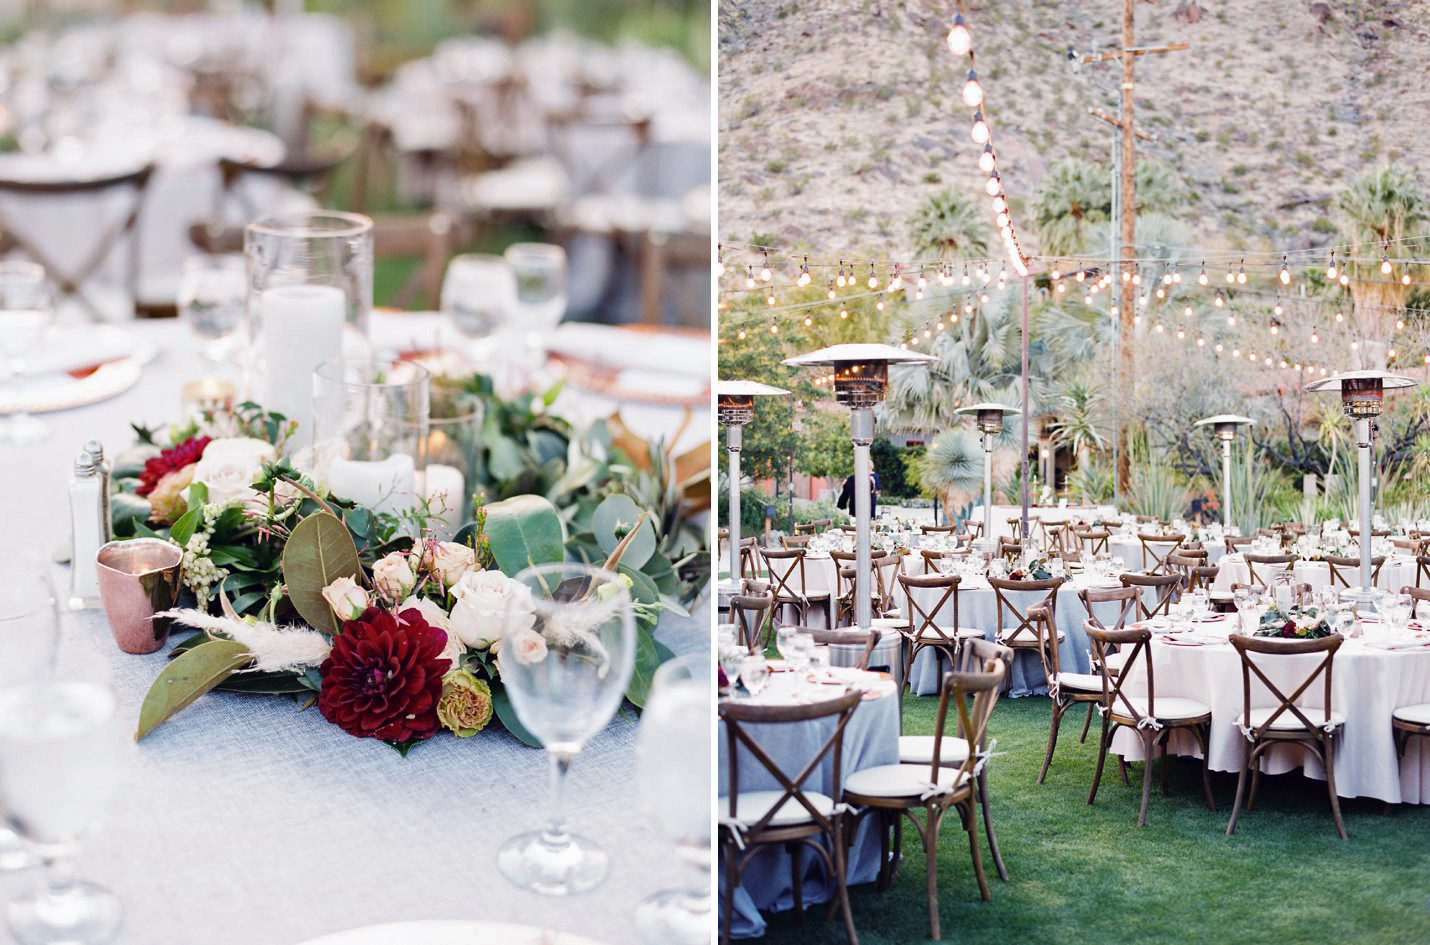 PalmSpringsWeddingPhotographer_RachelSolomonPhotography_Colony29Wedding-48.jpg